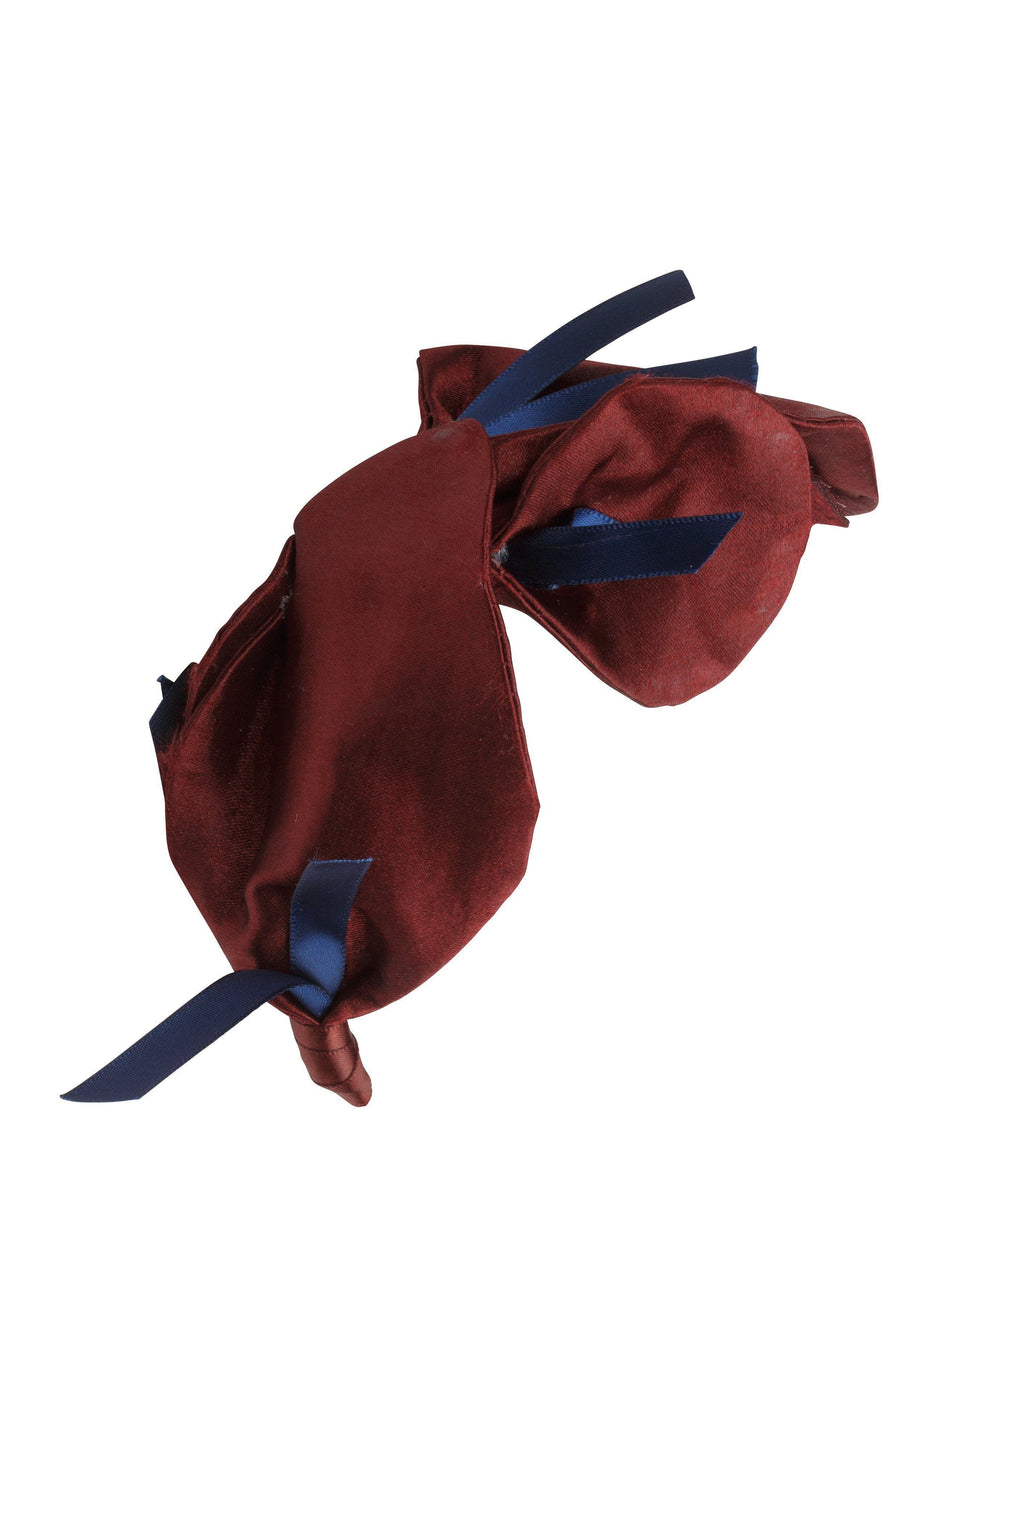 Ribbon Petal Baby - Burgundy/Navy - PROJECT 6, modest fashion